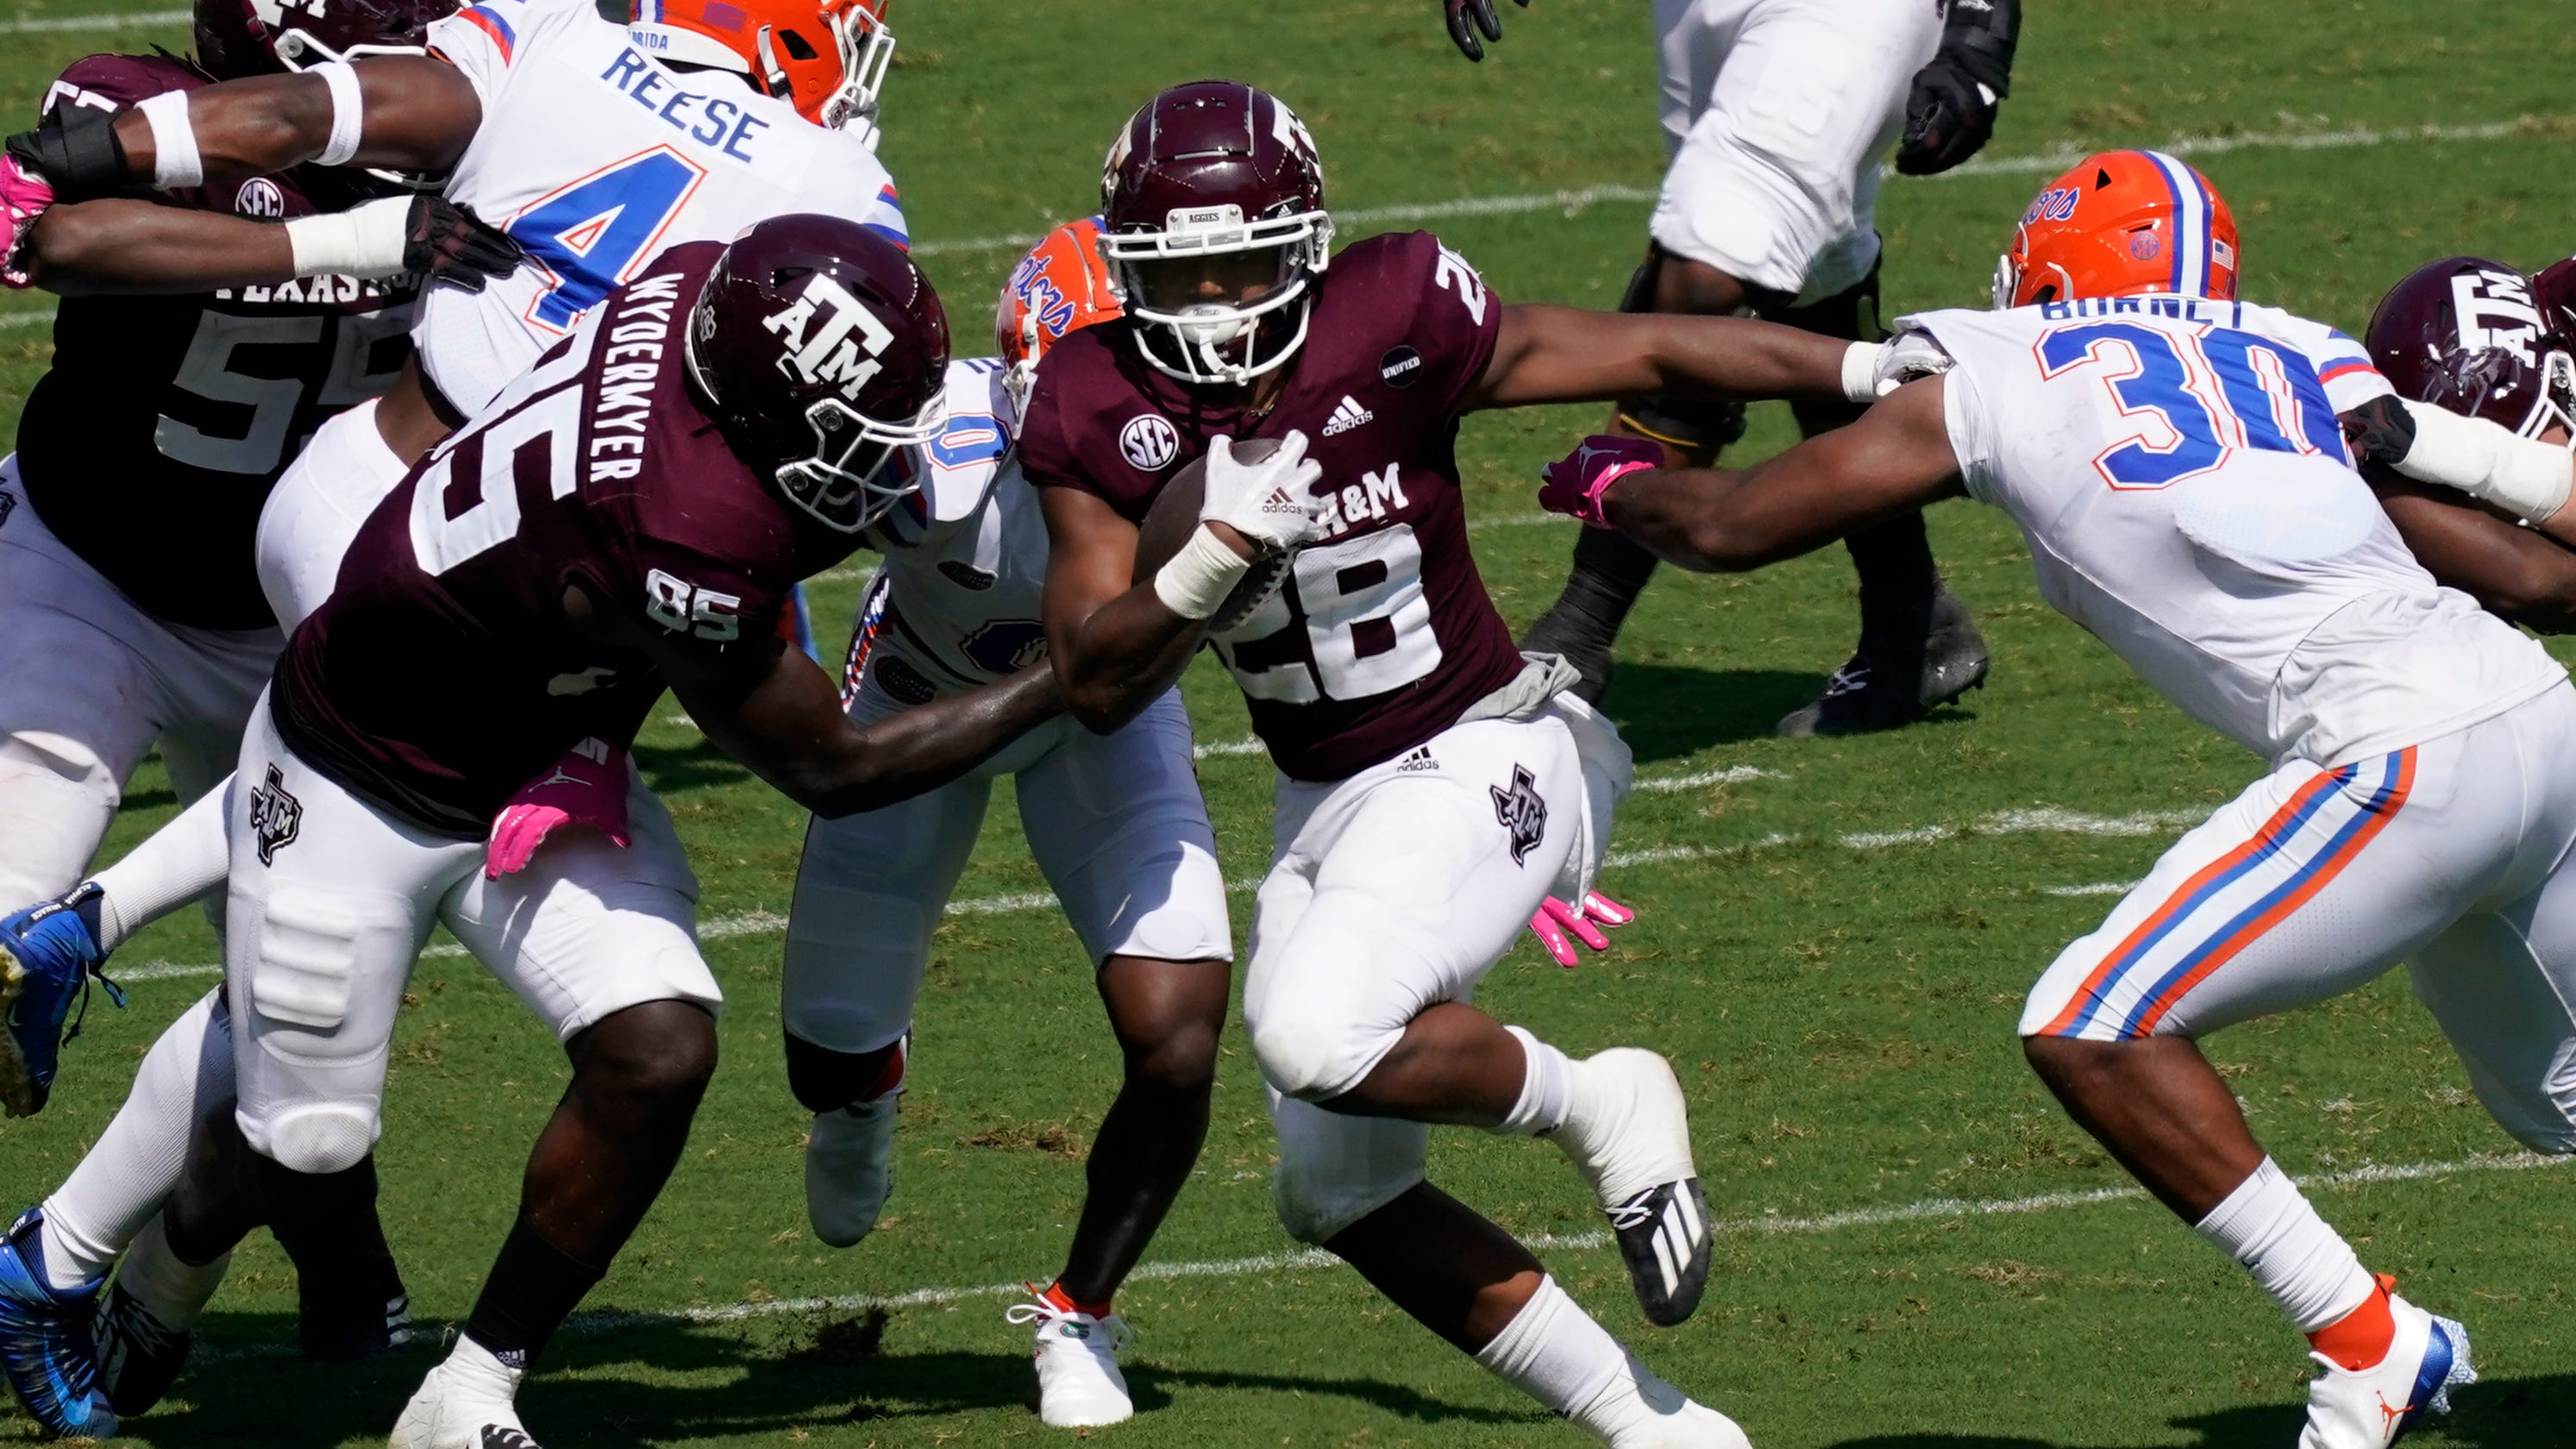 No. 20 Texas A&M upsets No. 3 Florida with last-second FG in SEC thriller